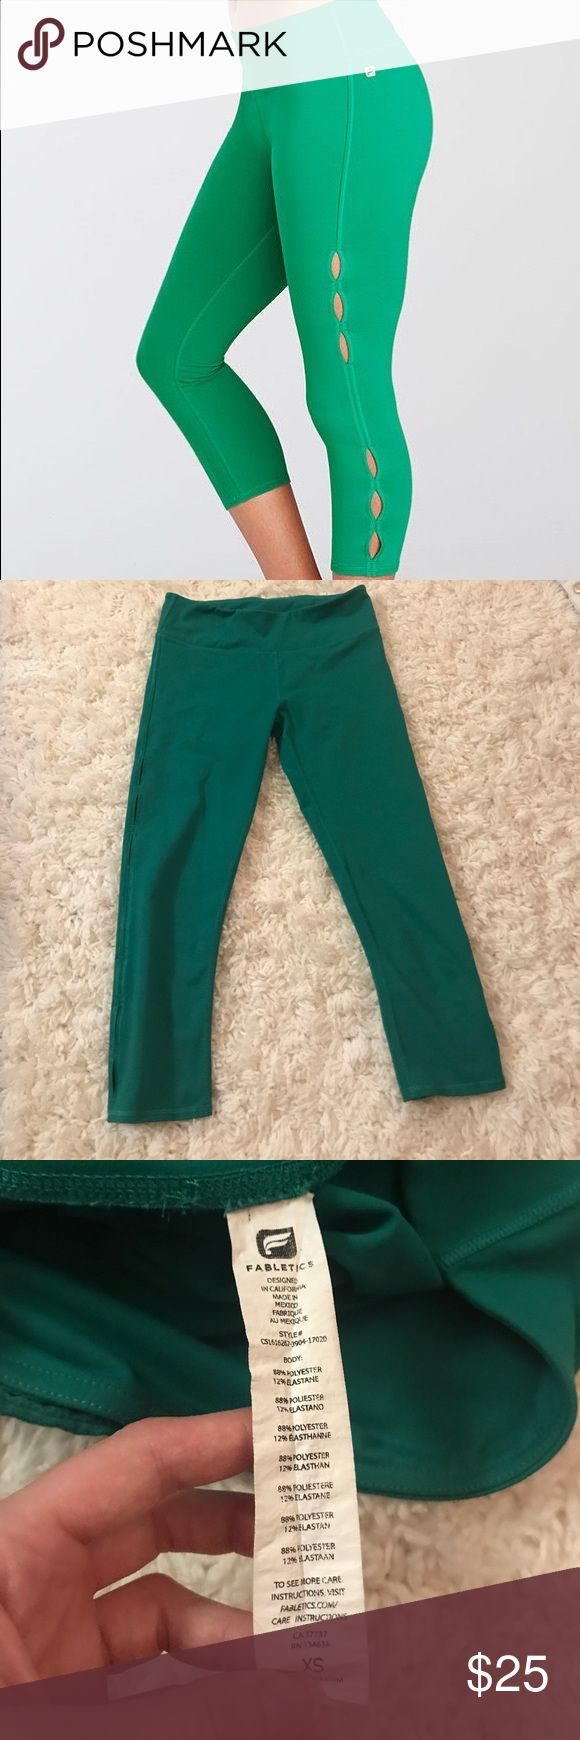 Fabletics cut-out leggings Fabletics cut-out leggings. Size CS. Emerald/kelly green. I really love these! The color is amazing but unfortunately they're too small. Perfect quality. Thick, supportive material. Bundle with my other fabletics leggings and make an offer! Fabletics Pants Leggings